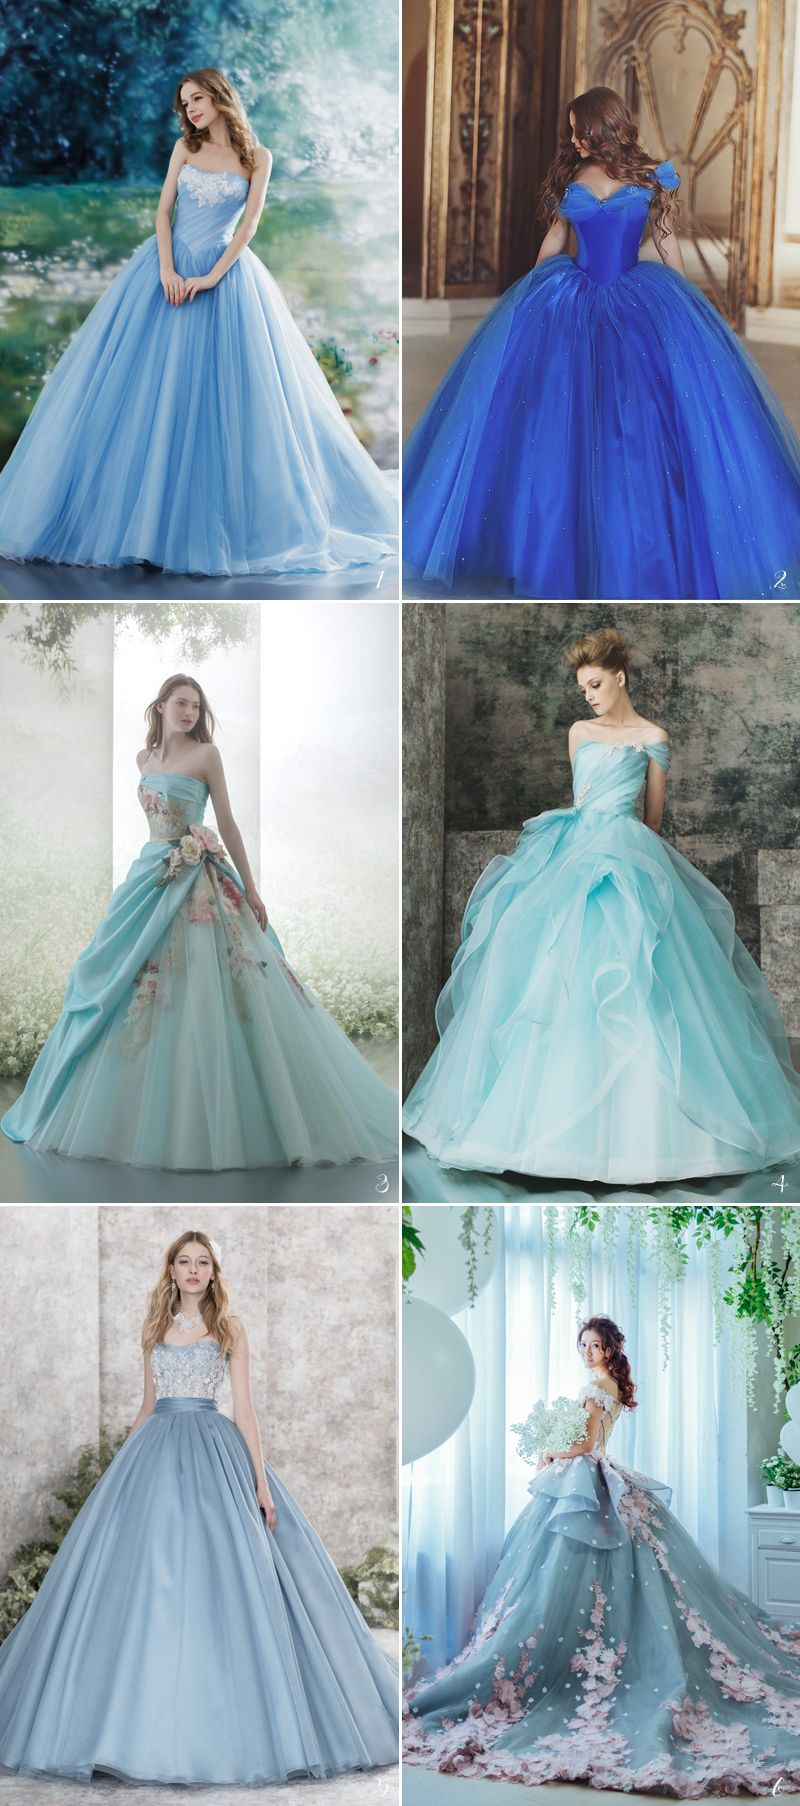 fairy tale wedding dresses for the disney princess bride dress